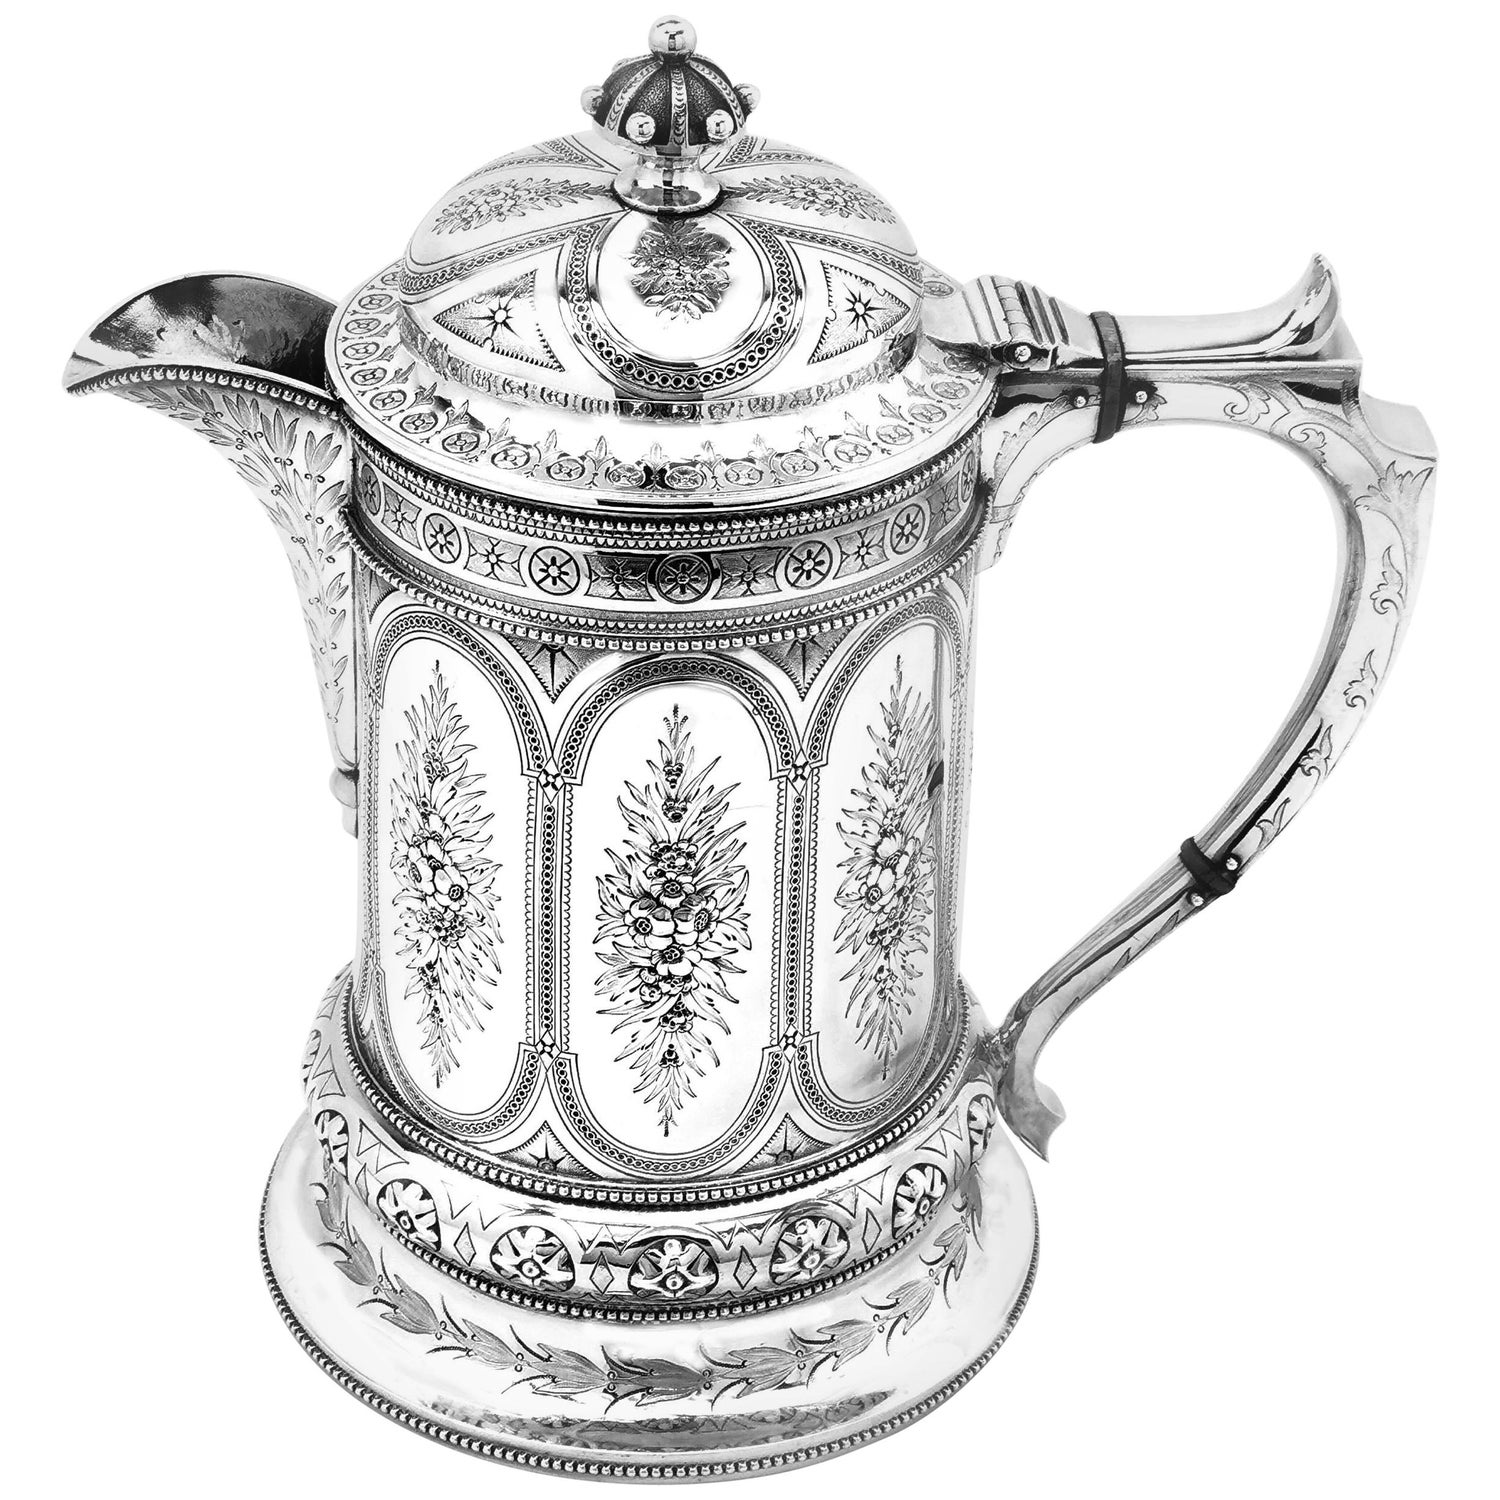 Antique Victorian Sterling Silver Jug / Flagon / Ewer 1869